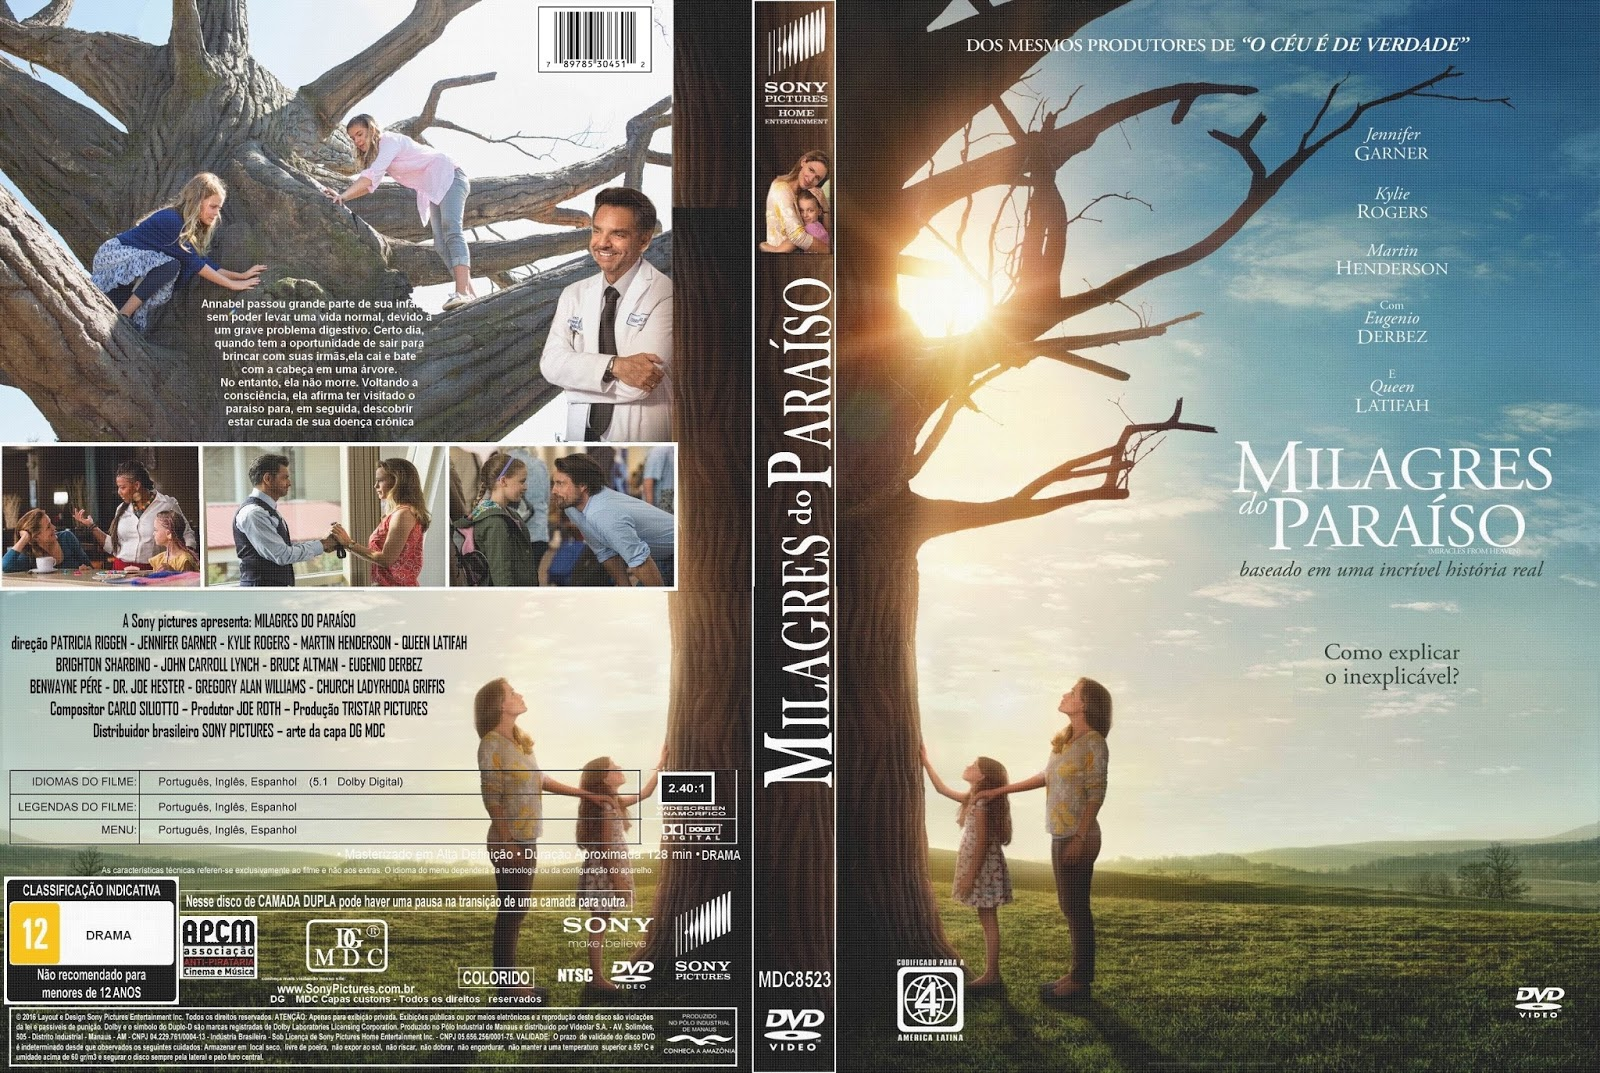 Download Milagres do Paraiso DVD-R Milagres 2Bdo 2BPara 25C3 25ADso